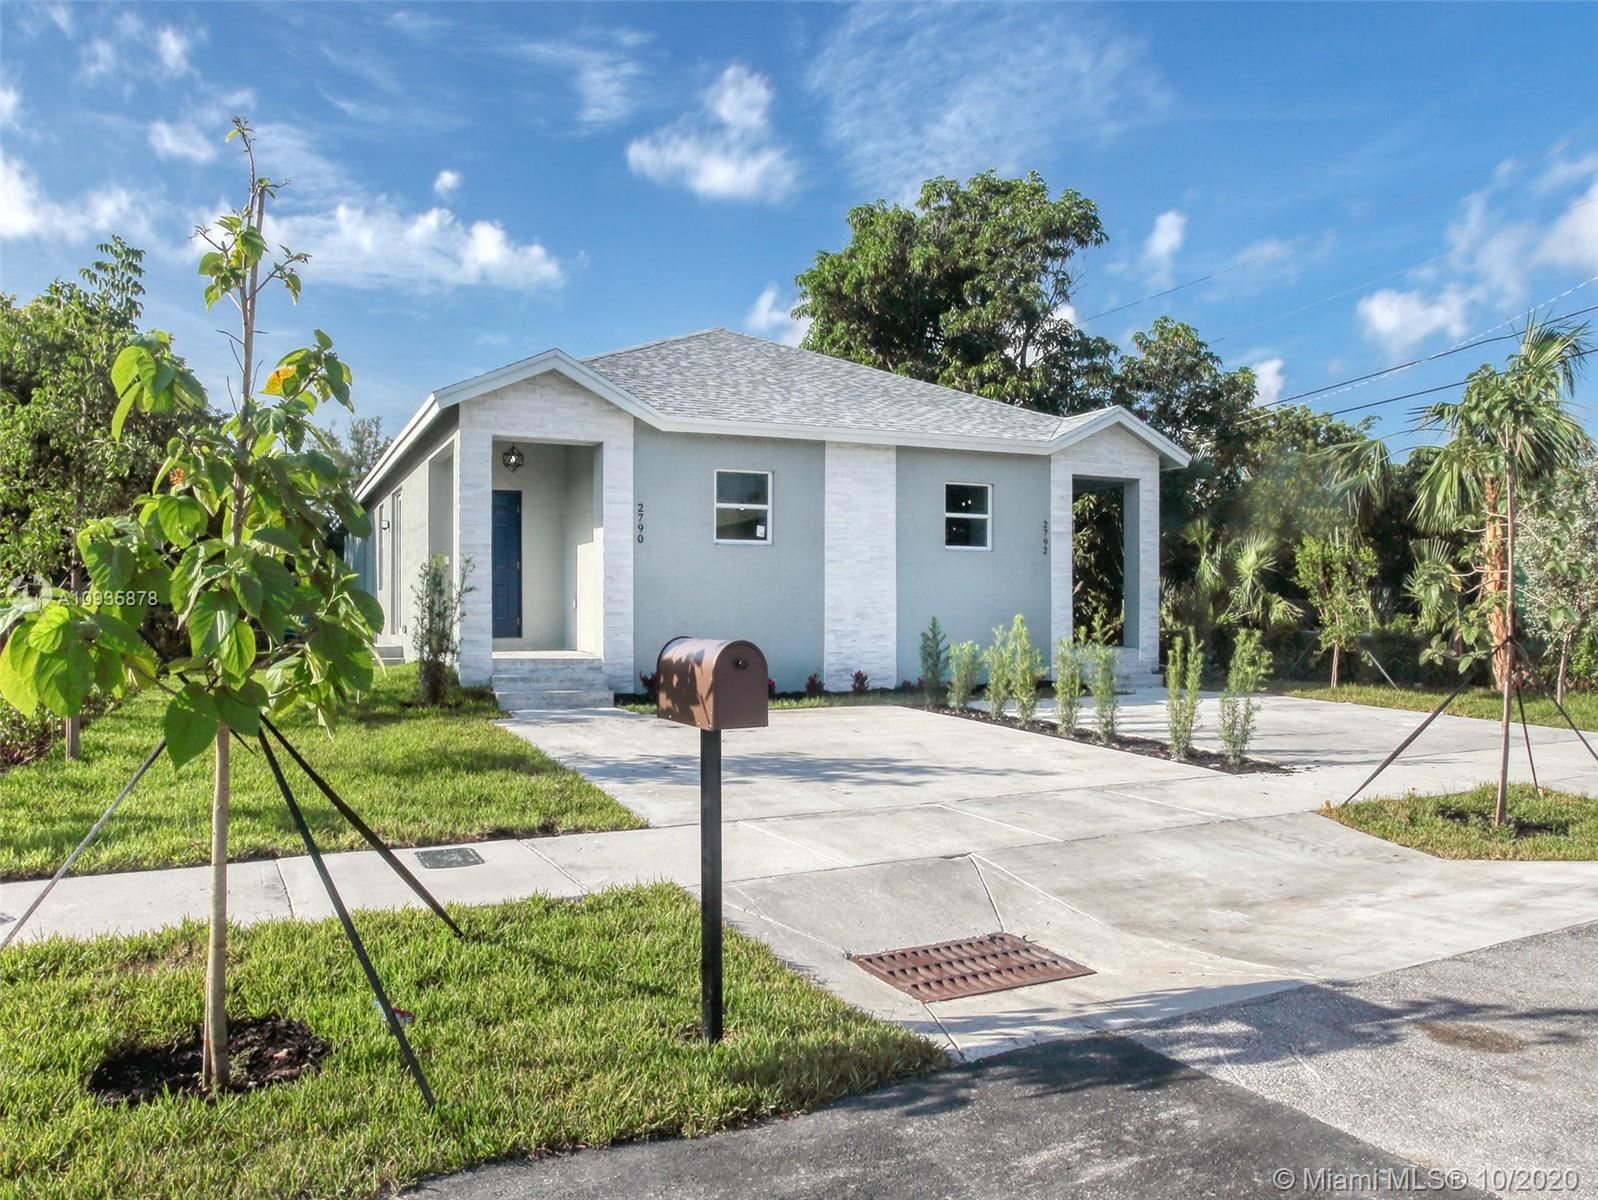 2790 NW 21st St, Fort Lauderdale, FL 33311 - #: A10935878